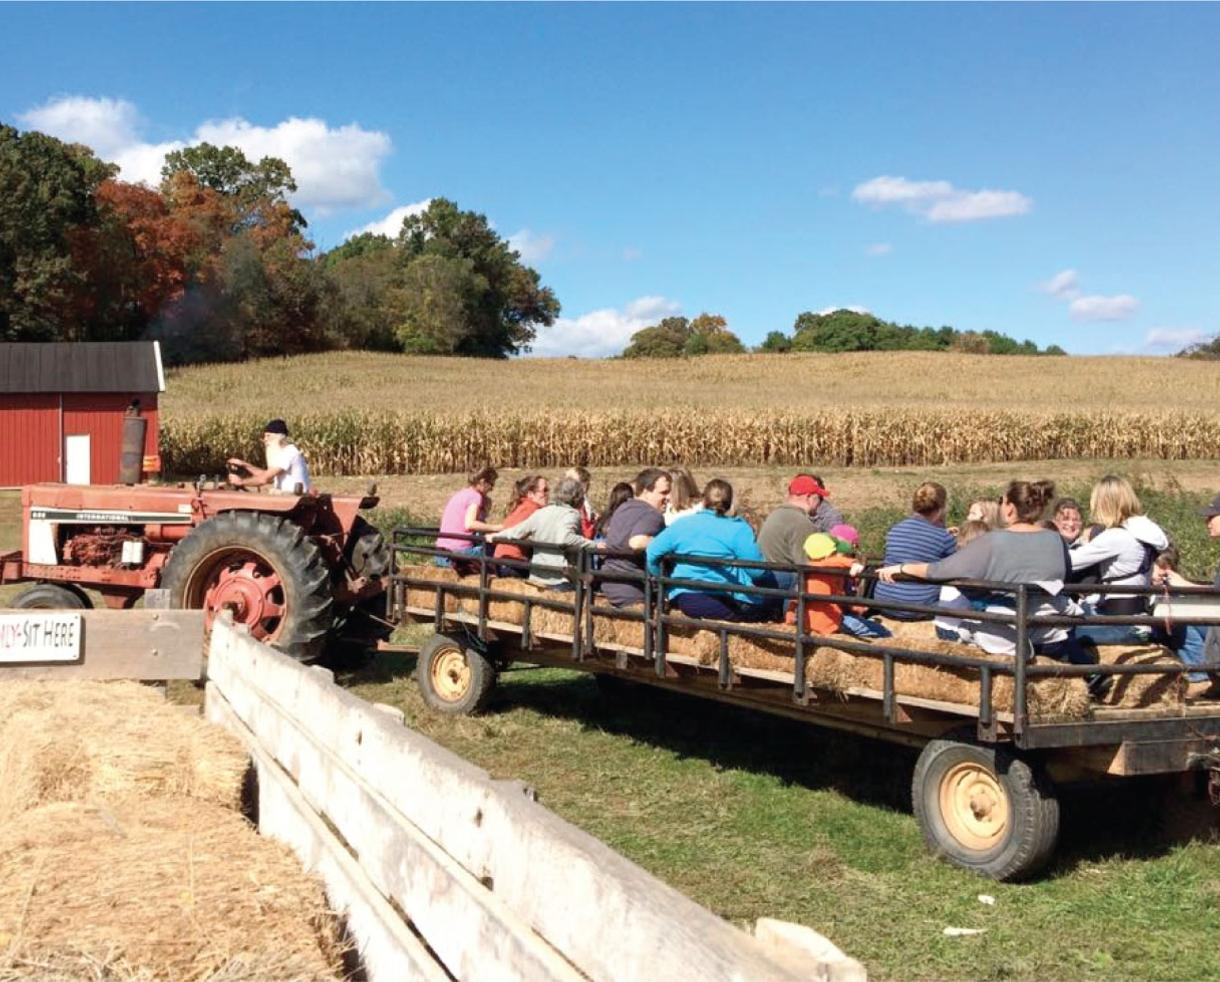 $7 for Sharp's Farm Fun for 2 - Hayride, Pick Your Own Pumpkins and Popcorn! Brookeville, MD (47% Off)